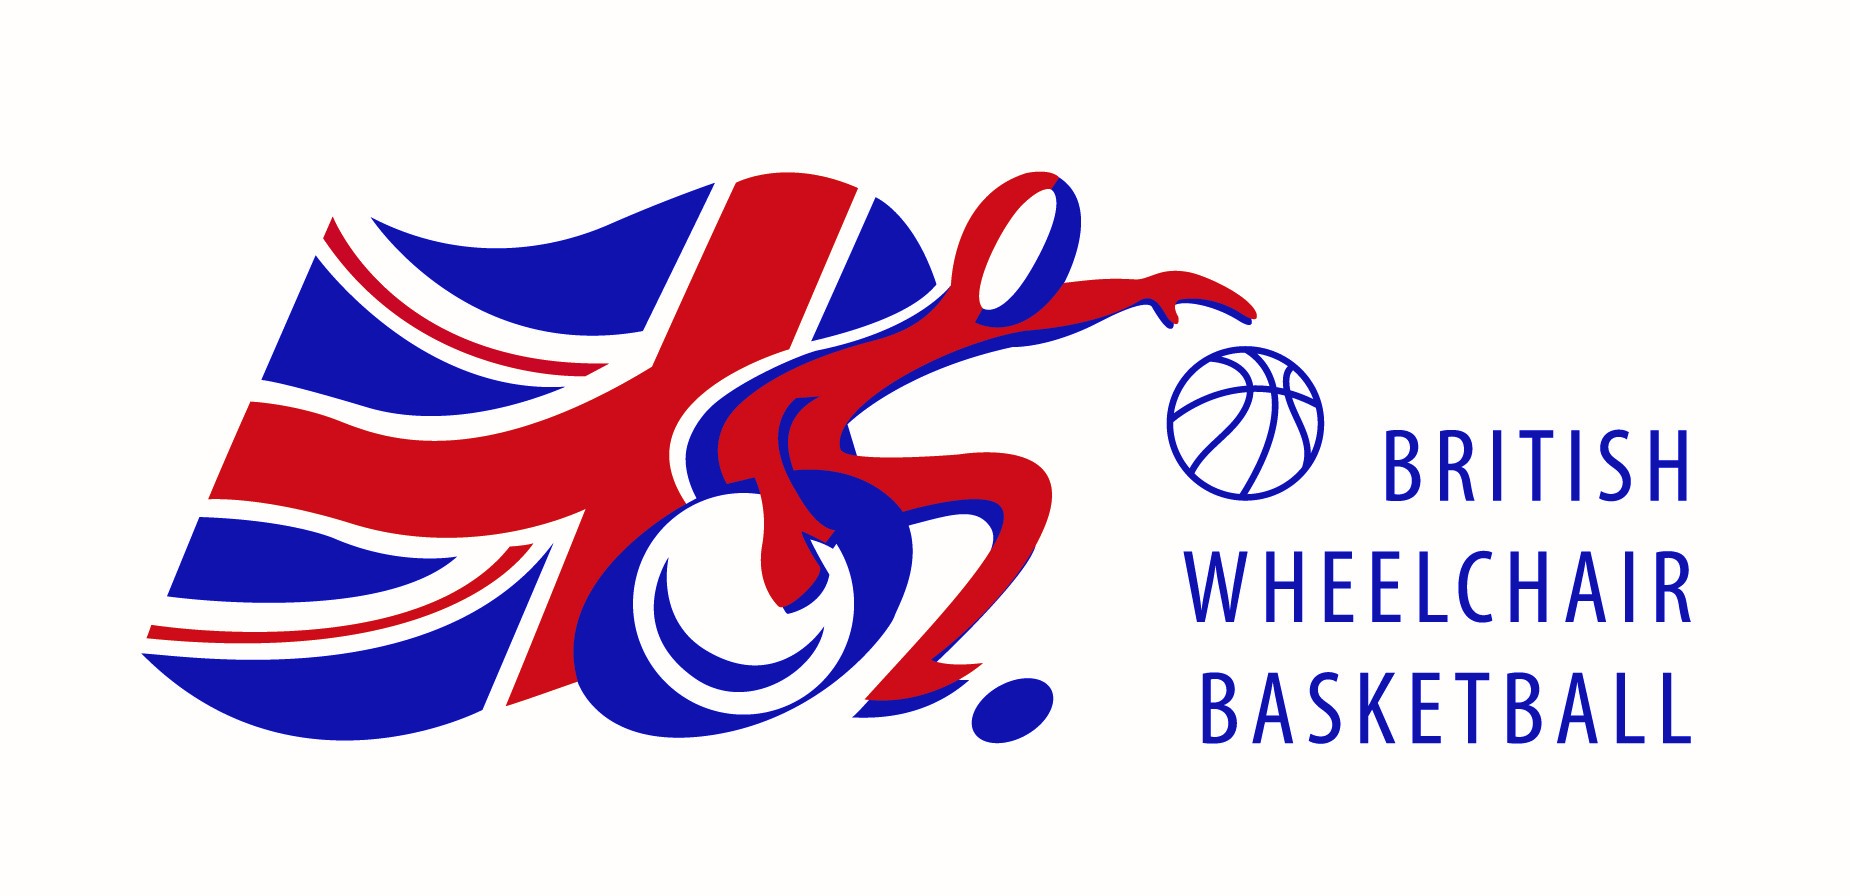 Copy of British Wheelchair Basketball